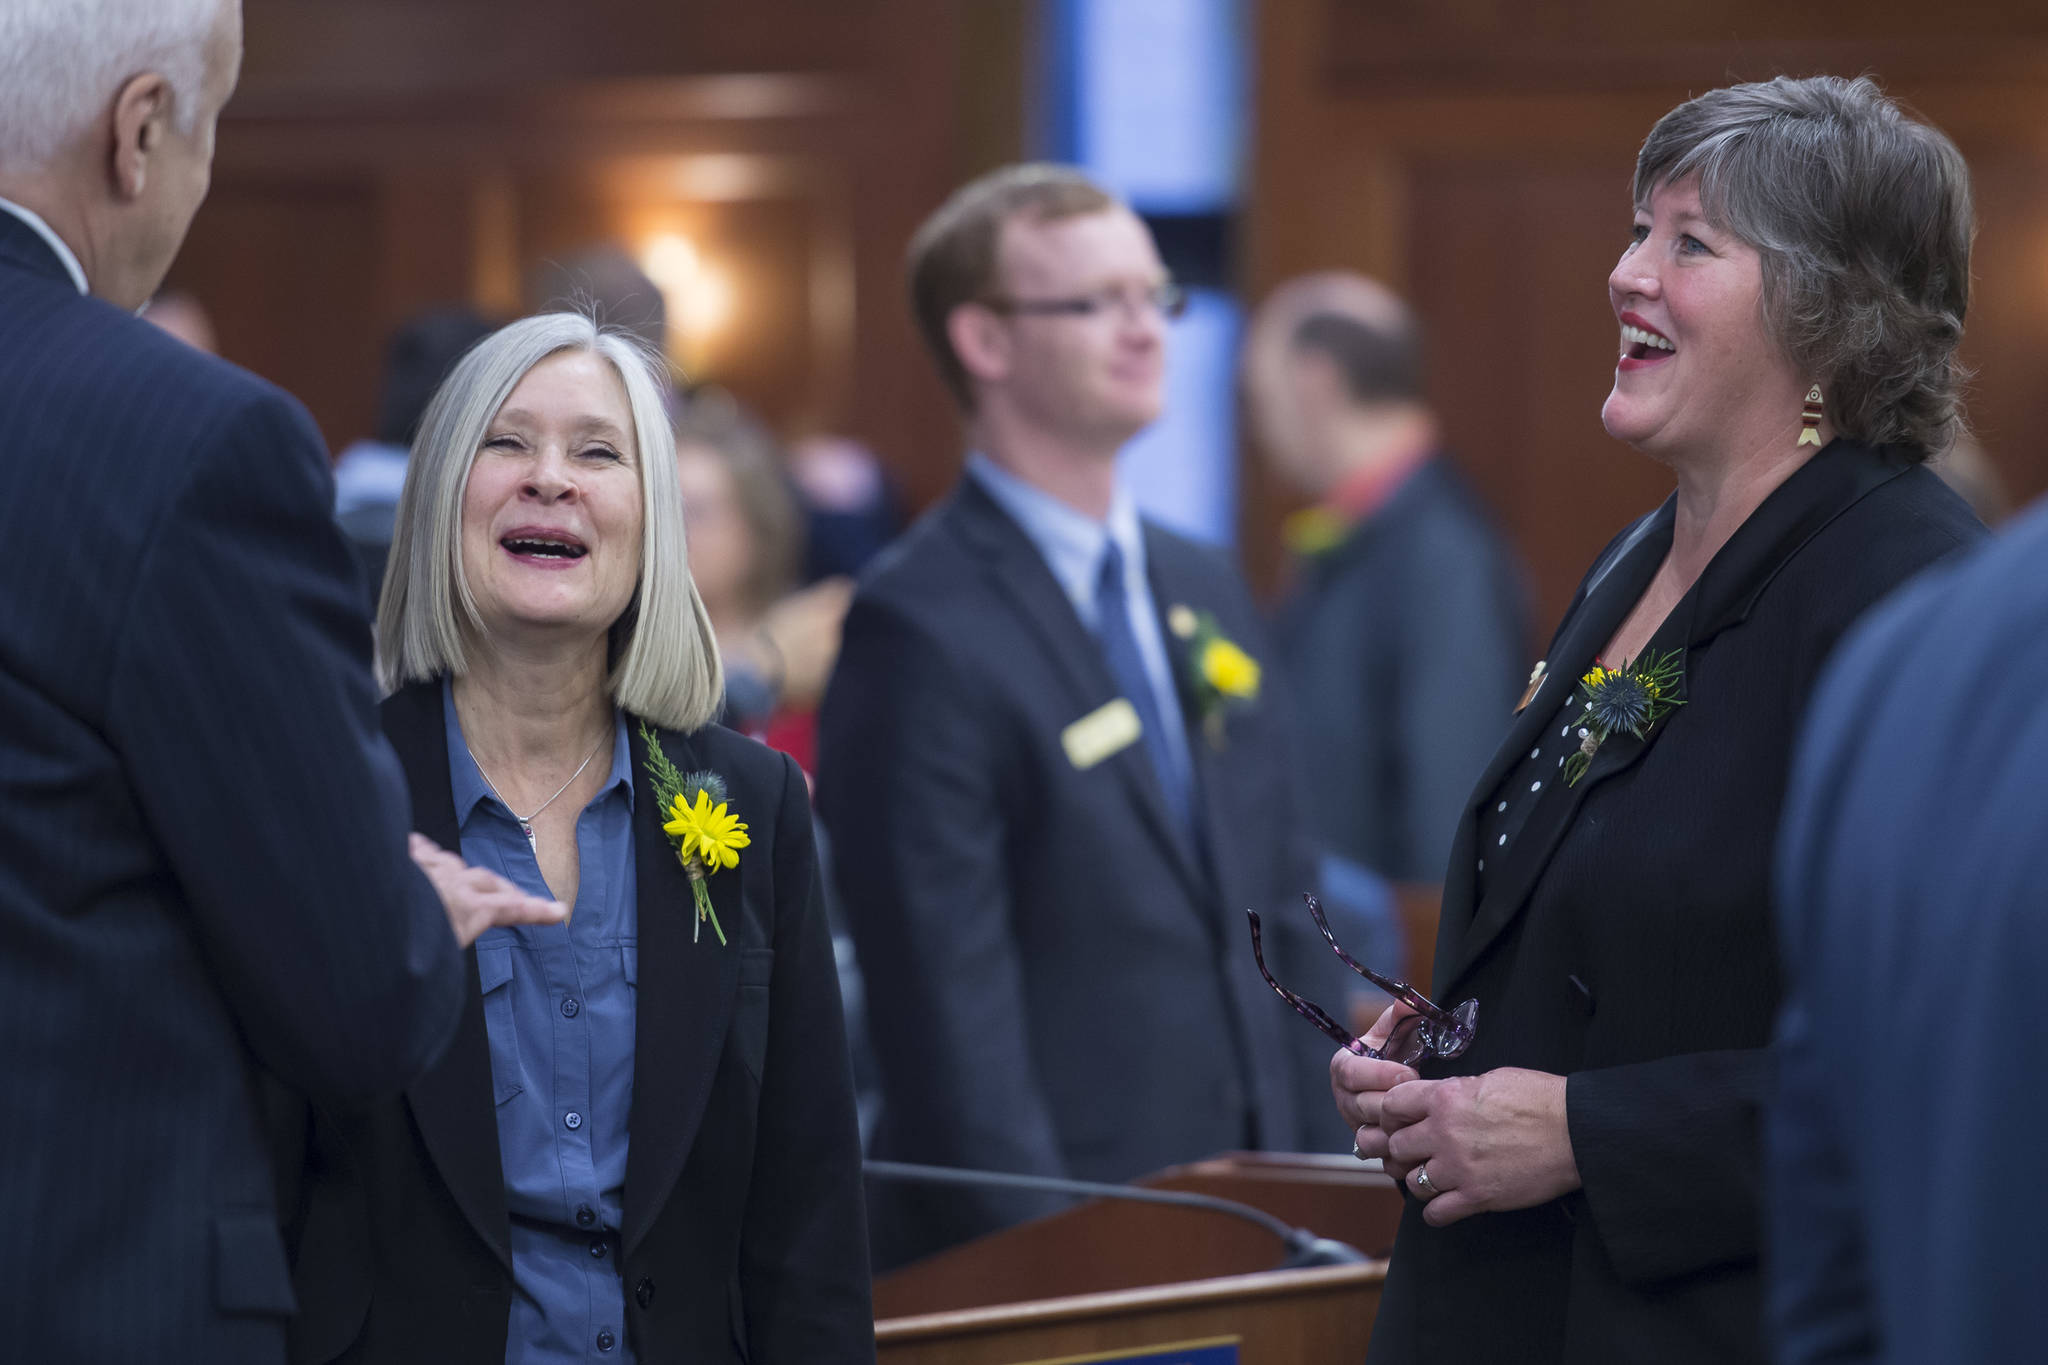 Rep. Andi Story, D-Juneau, center, and Rep. Sara Hannan, D-Juneau, share a laugh with Rep. Bart LeBon, R-Fairbanks, on the opening day of the 31st Session of the Alaska Legislature on Tuesday, Jan. 15, 2019. (Michael Penn | Juneau Empire)